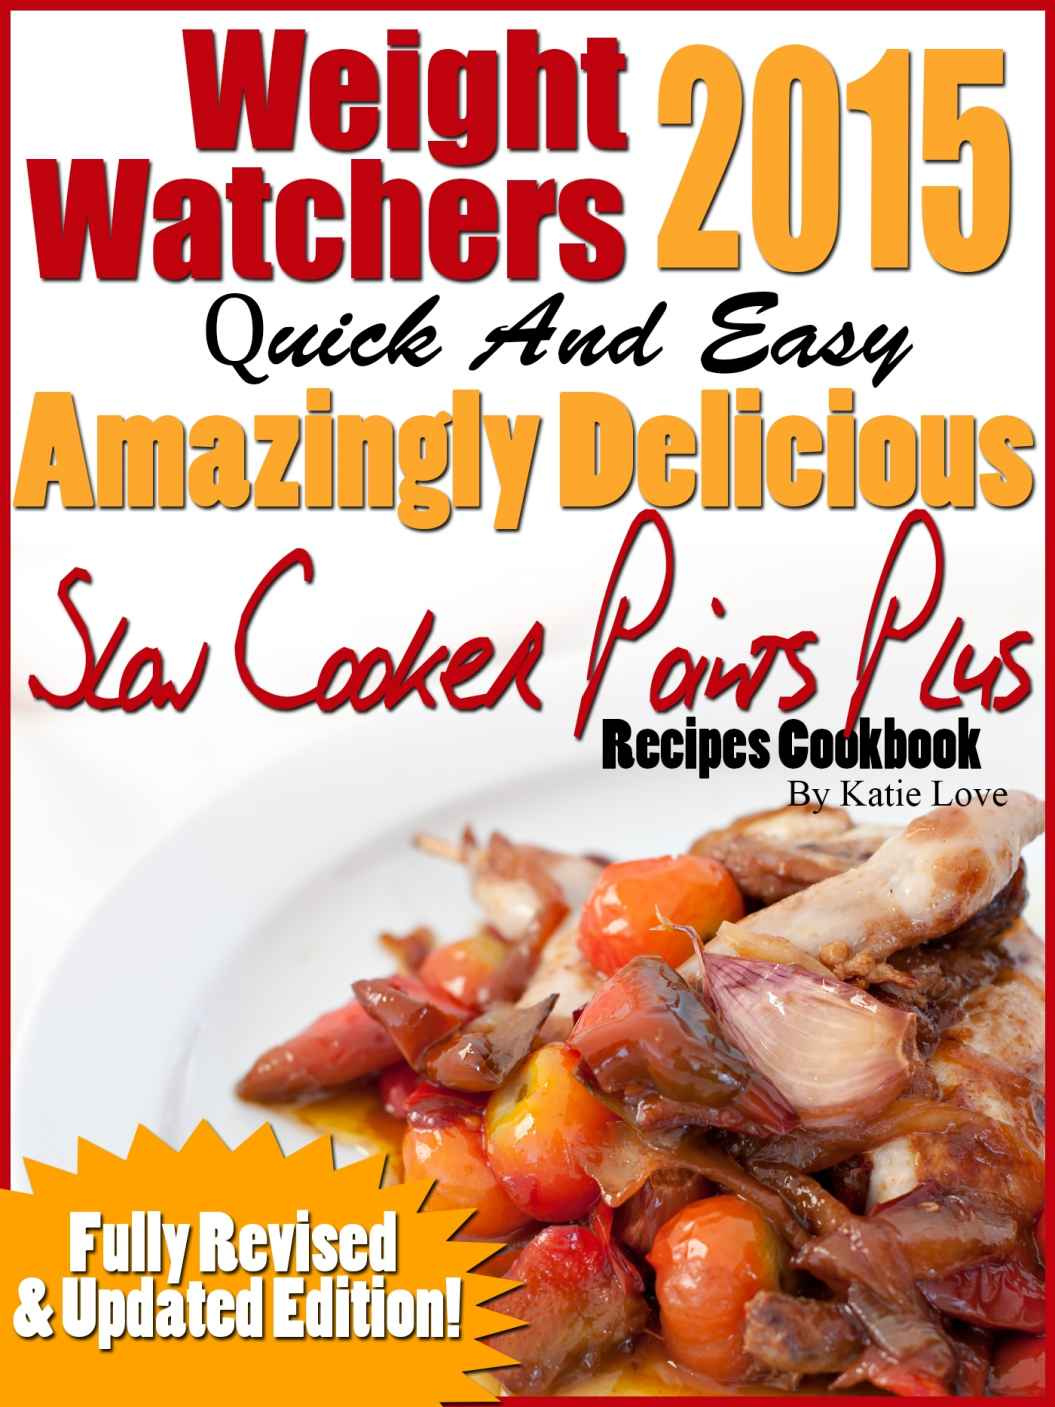 FREE Weight Watchers 2015 Quick & Easy Amazingly Delicious Slow Cooker Points Plus Recipes eCookbook! ($7.88 Value)